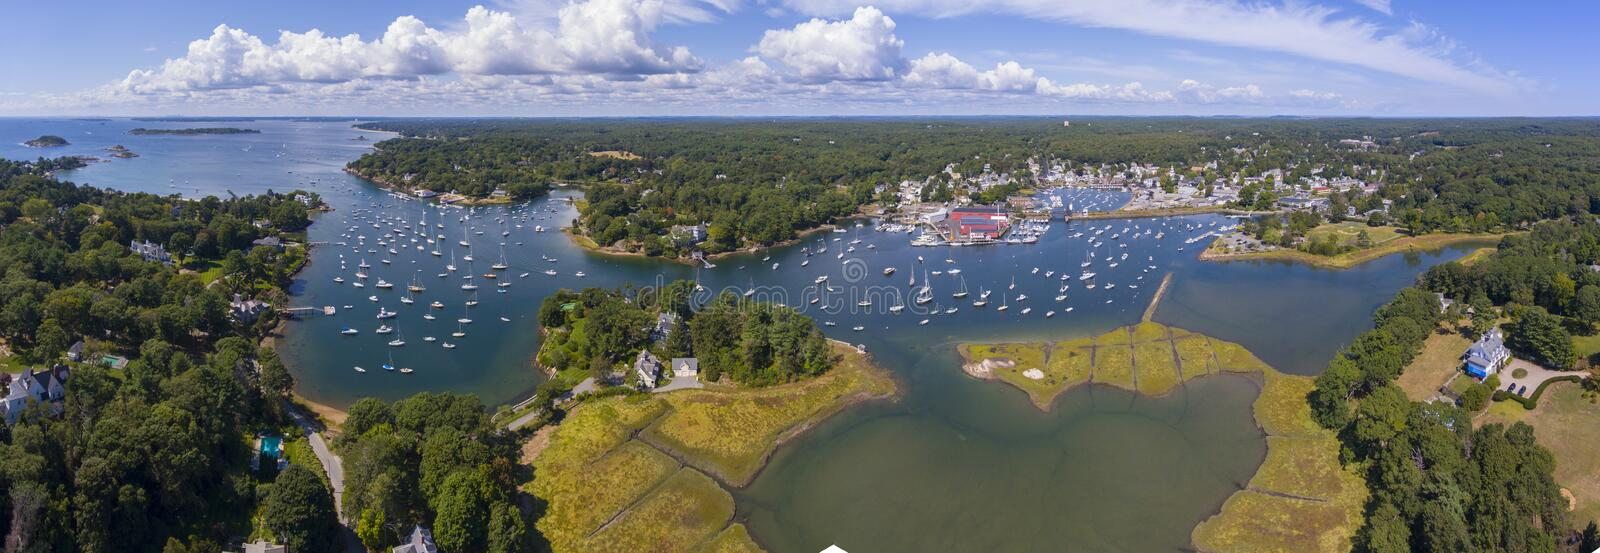 Manchester-by-the-sea, Cape Ann, Massachusetts, USA. Manchester Marine and harbor aerial view panorama, Manchester by the sea, Cape Ann, Massachusetts, USA royalty free stock image